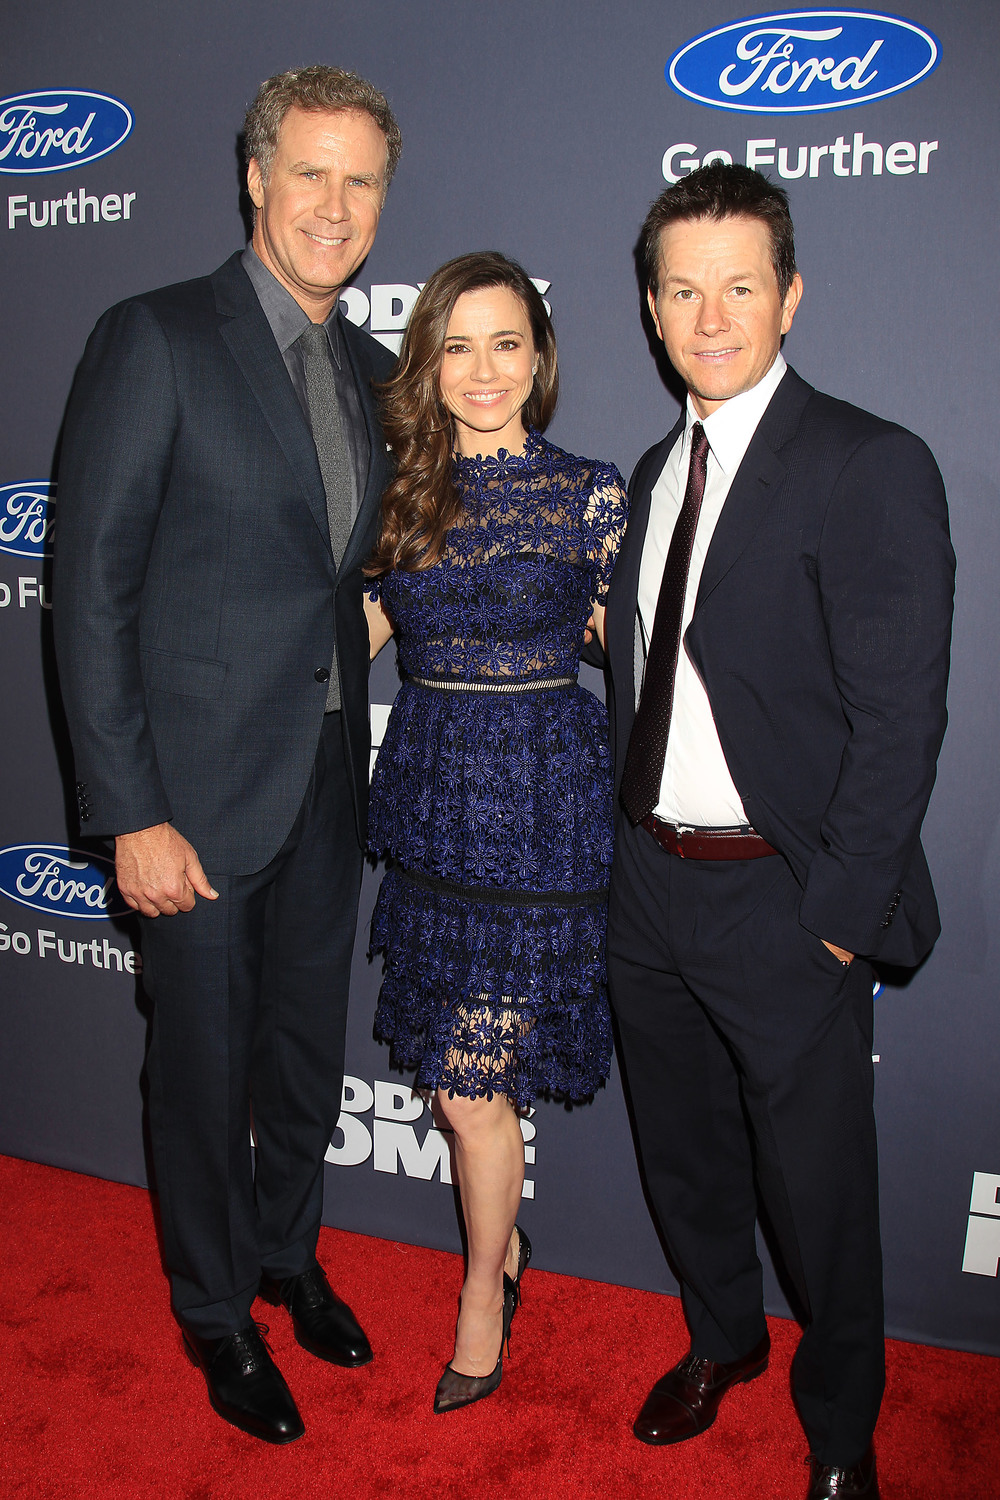 Will Ferrell, Linda Cardellini and Mark Wahlberg